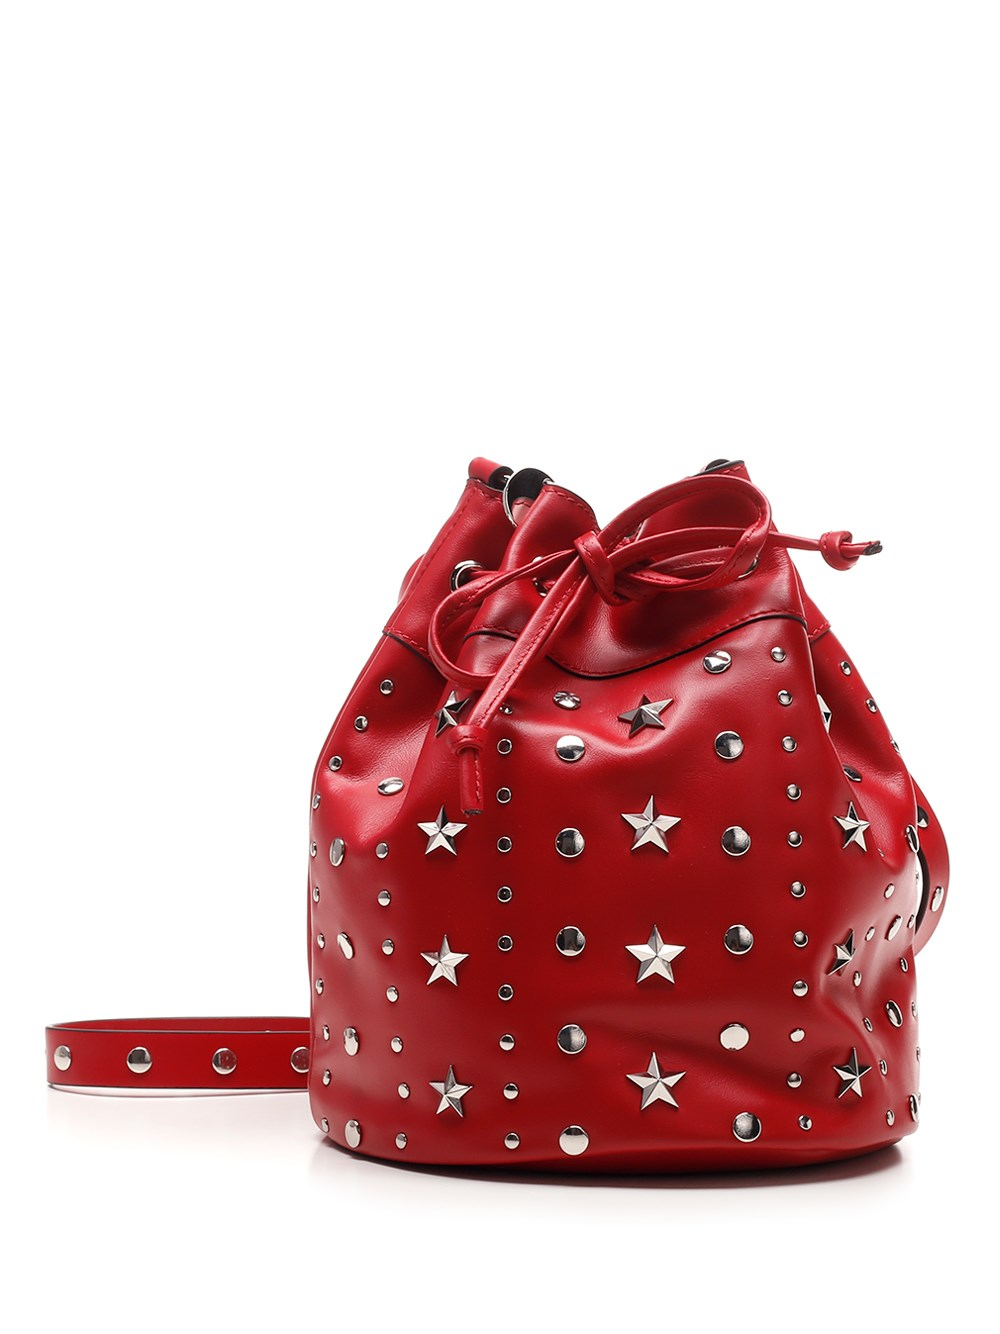 RED (V) Starry Bucket Bag